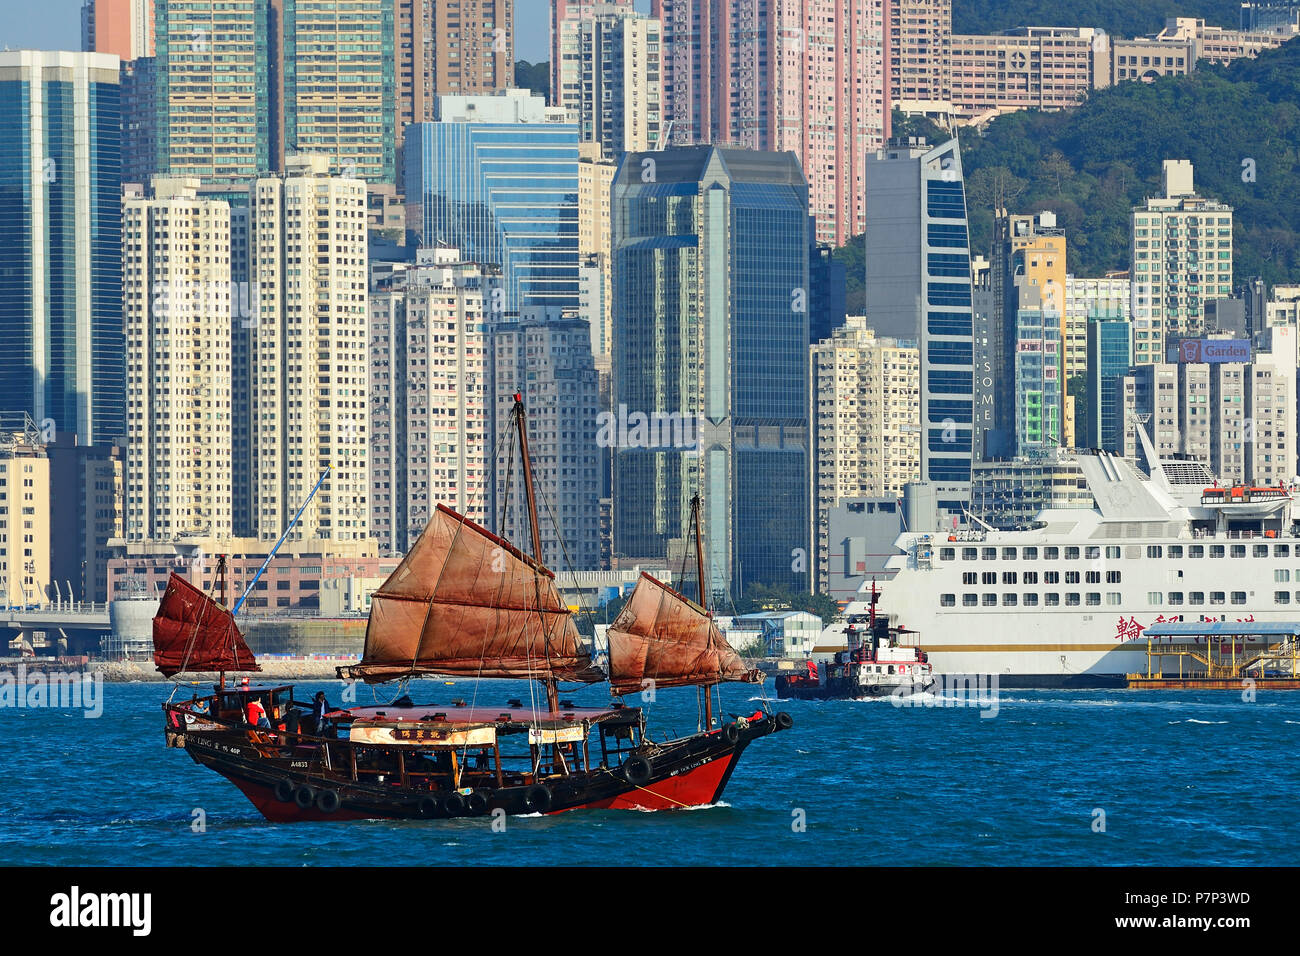 Traditional sailboat, junk in front of the skyline, Hong Kong, China - Stock Image